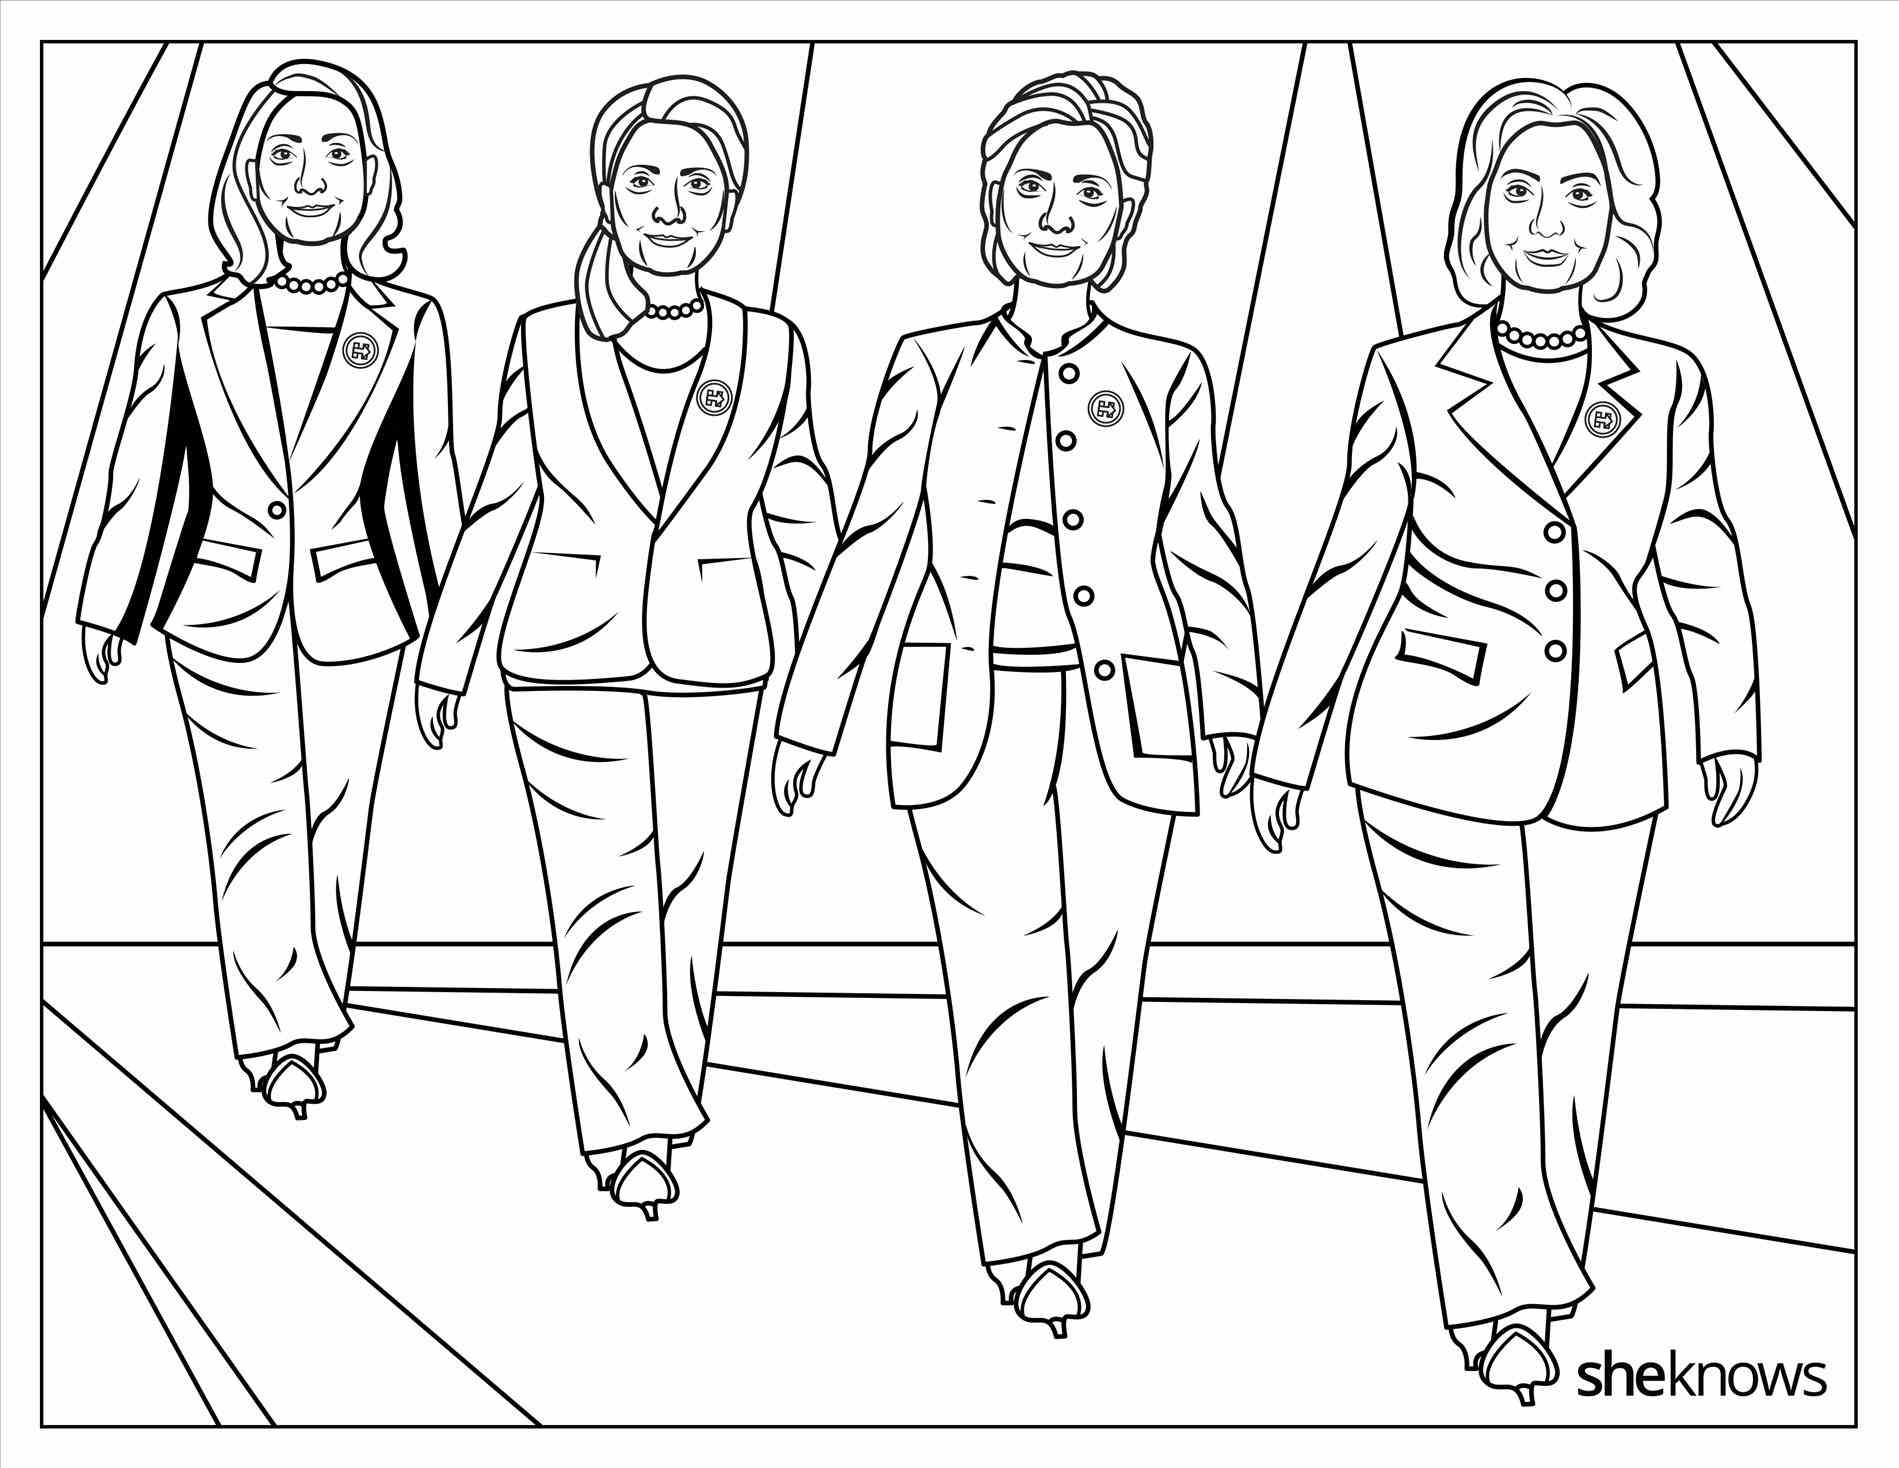 Enchanting Trump Coloring Pages Frieze Printable Coloring Pages Gallery Of Funny Hillary Clinton Meme Coloring Page for Adults Hilarious Gallery